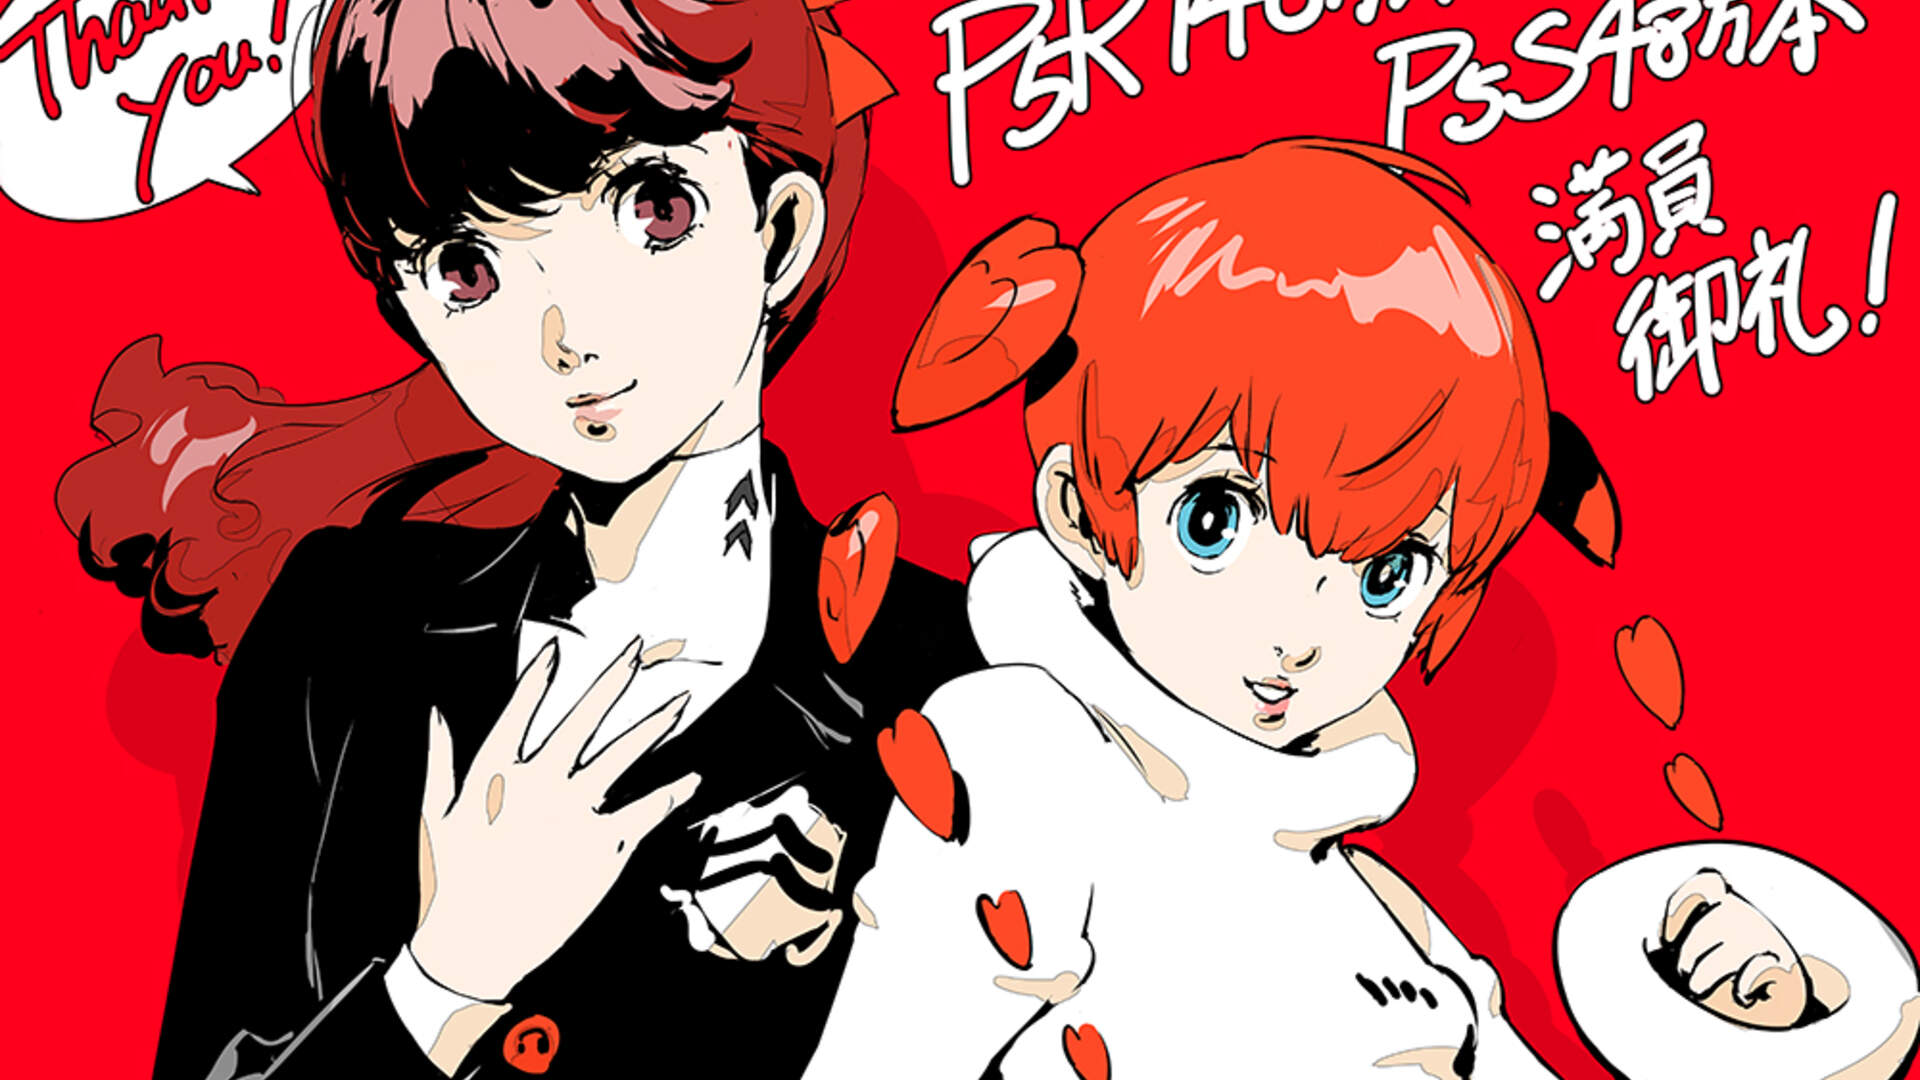 Persona Franchise Tops 13 Million Sales, as Persona 4 PC Overtakes Persona 5 Scramble Sales